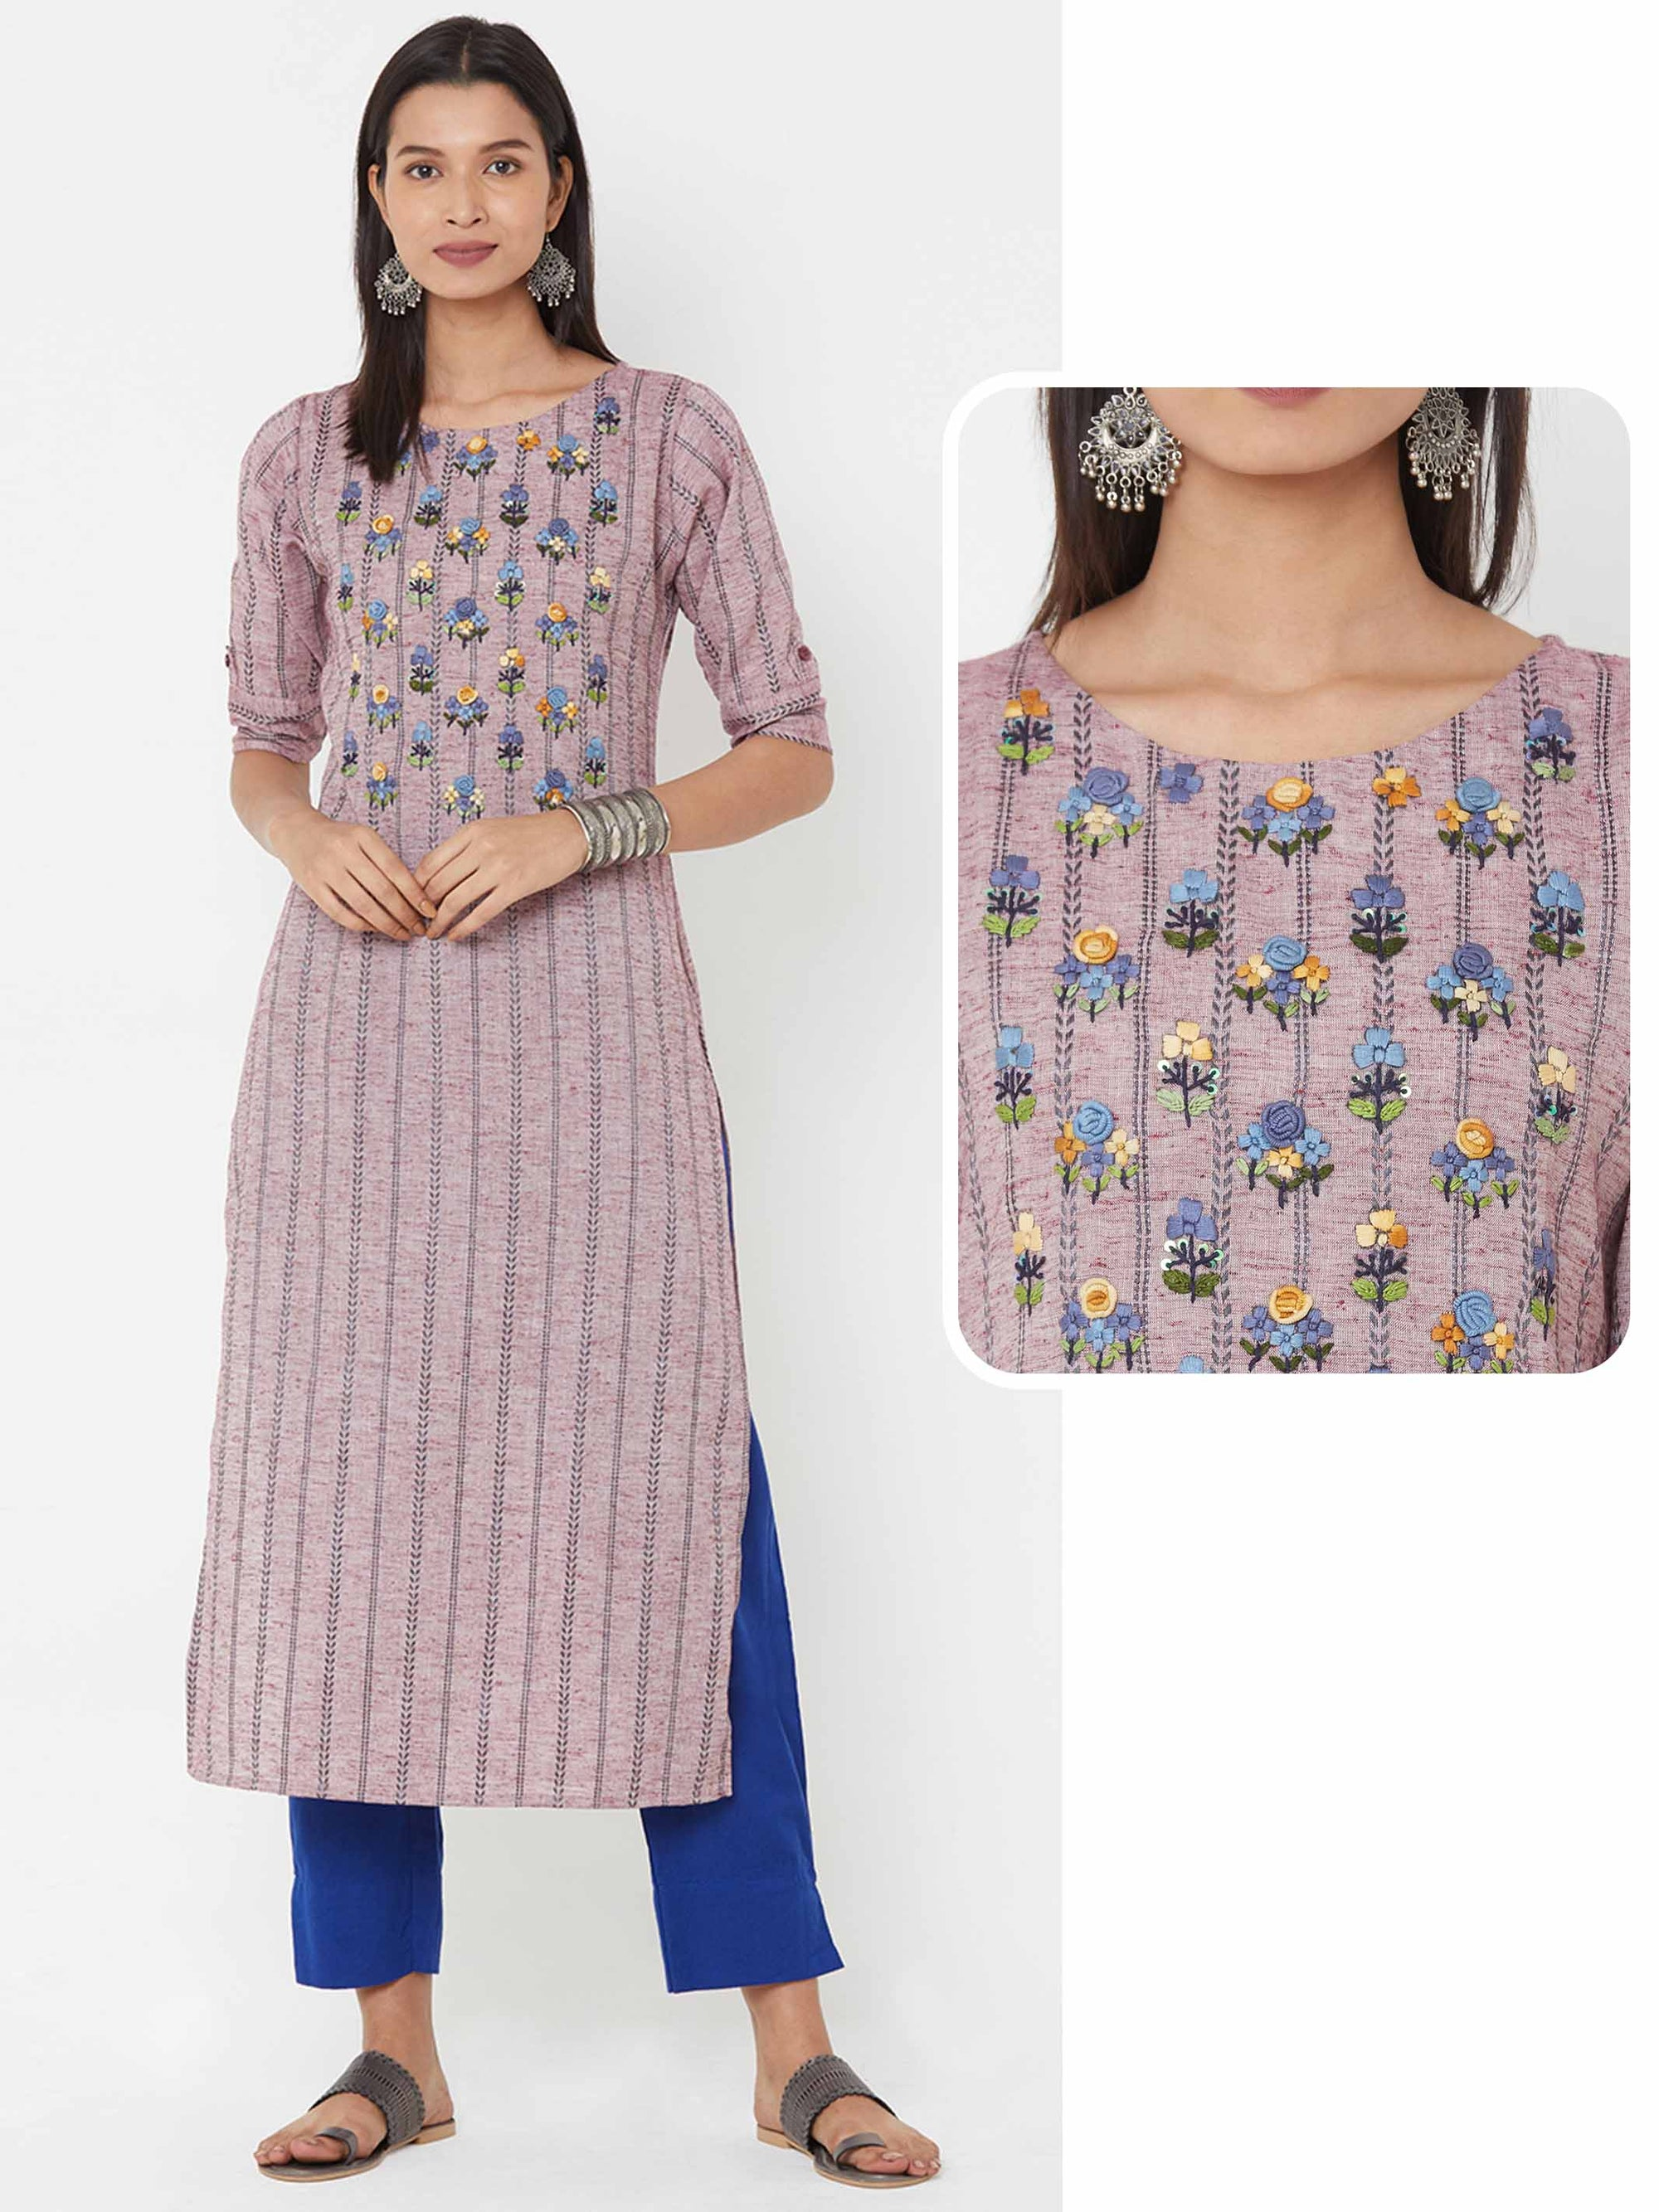 Bullion Knot Floral Embroidered Yoke over Striped Woven Kurta – Light Wine